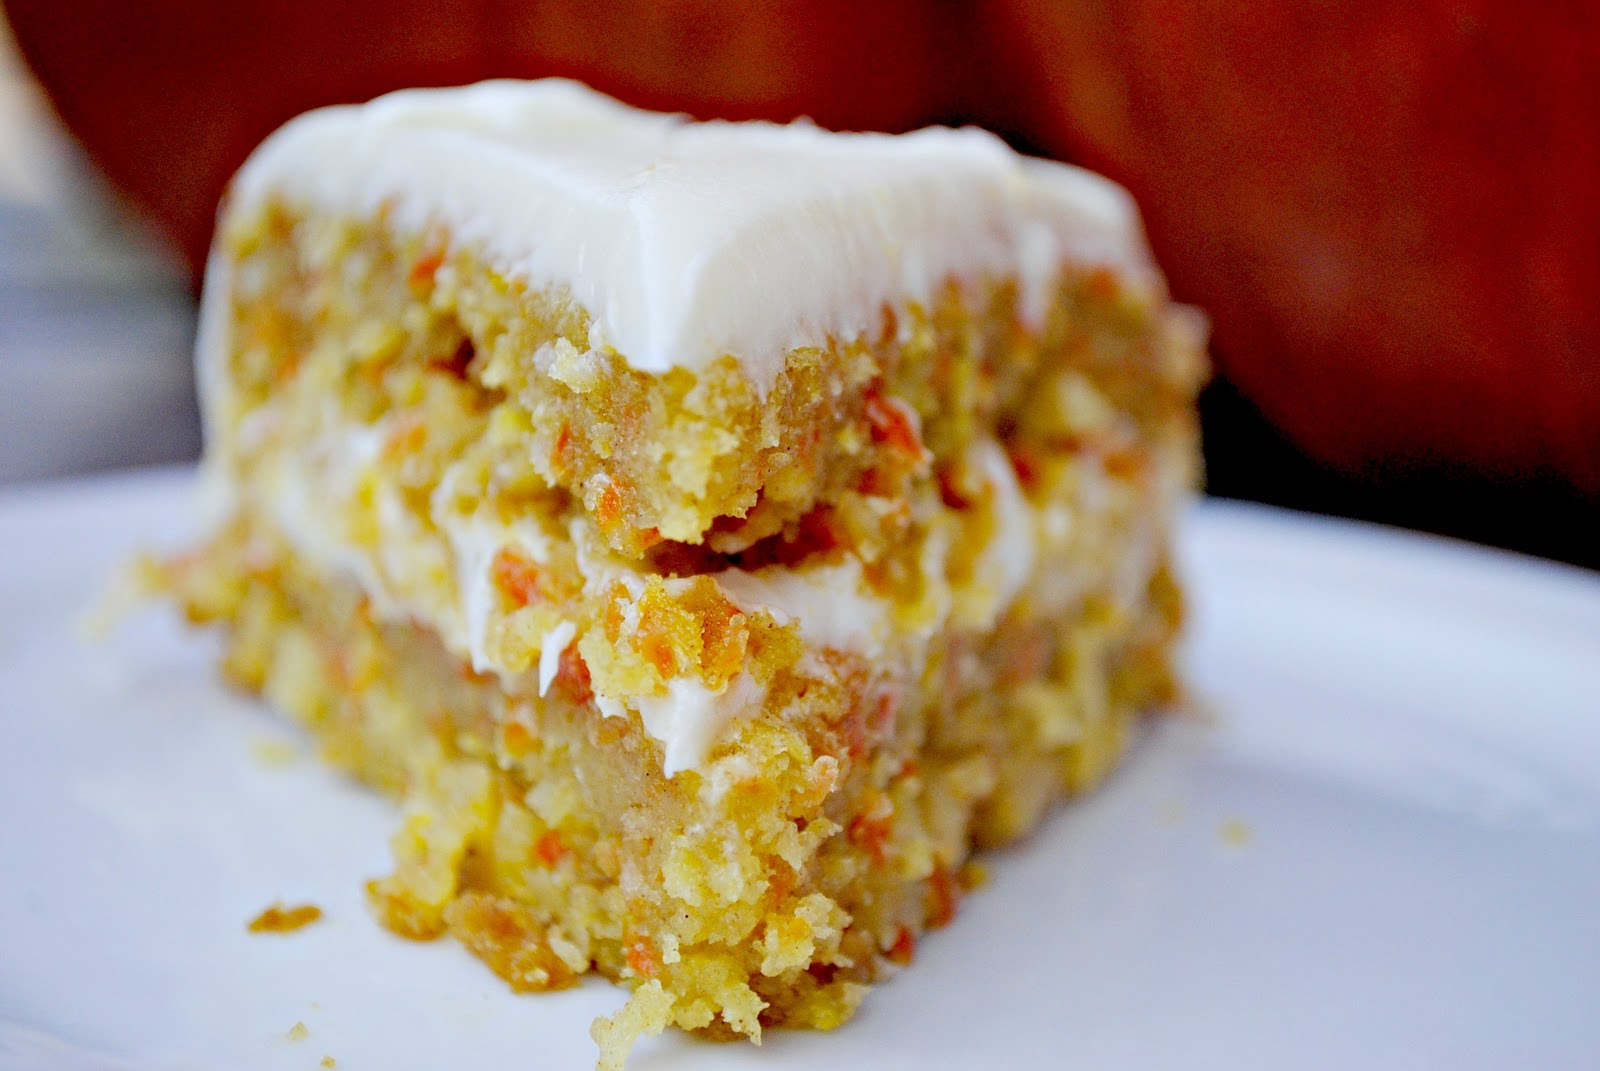 Homemade Carrot Cake With Pineapple And Coconut